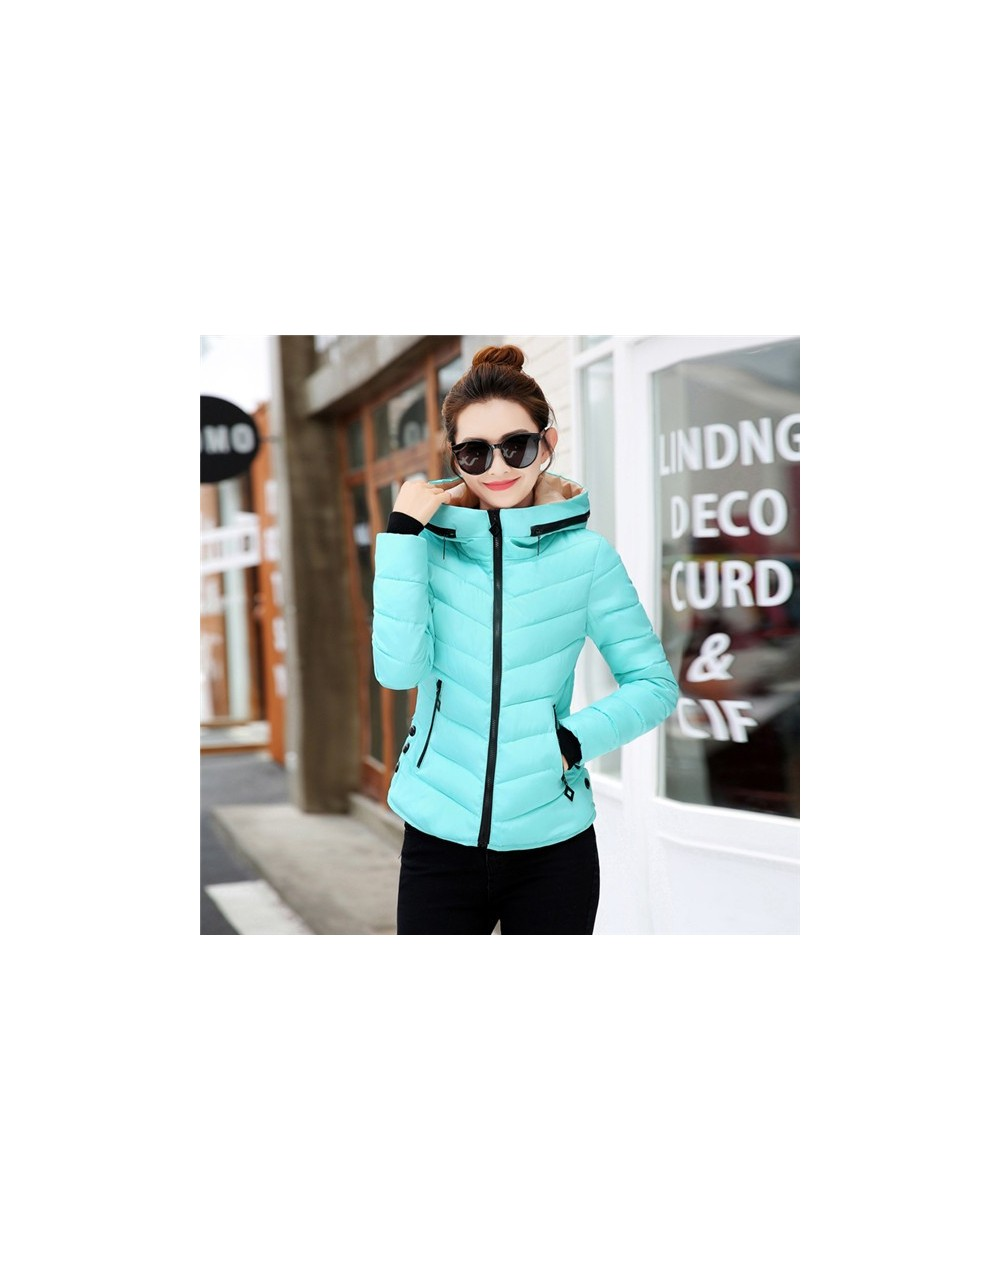 Winter Parka Women Coats New Fashion Hooded Short Outerwear Down Cotton Jacket Slim Large Size Girls Student Cotton Clothes ...